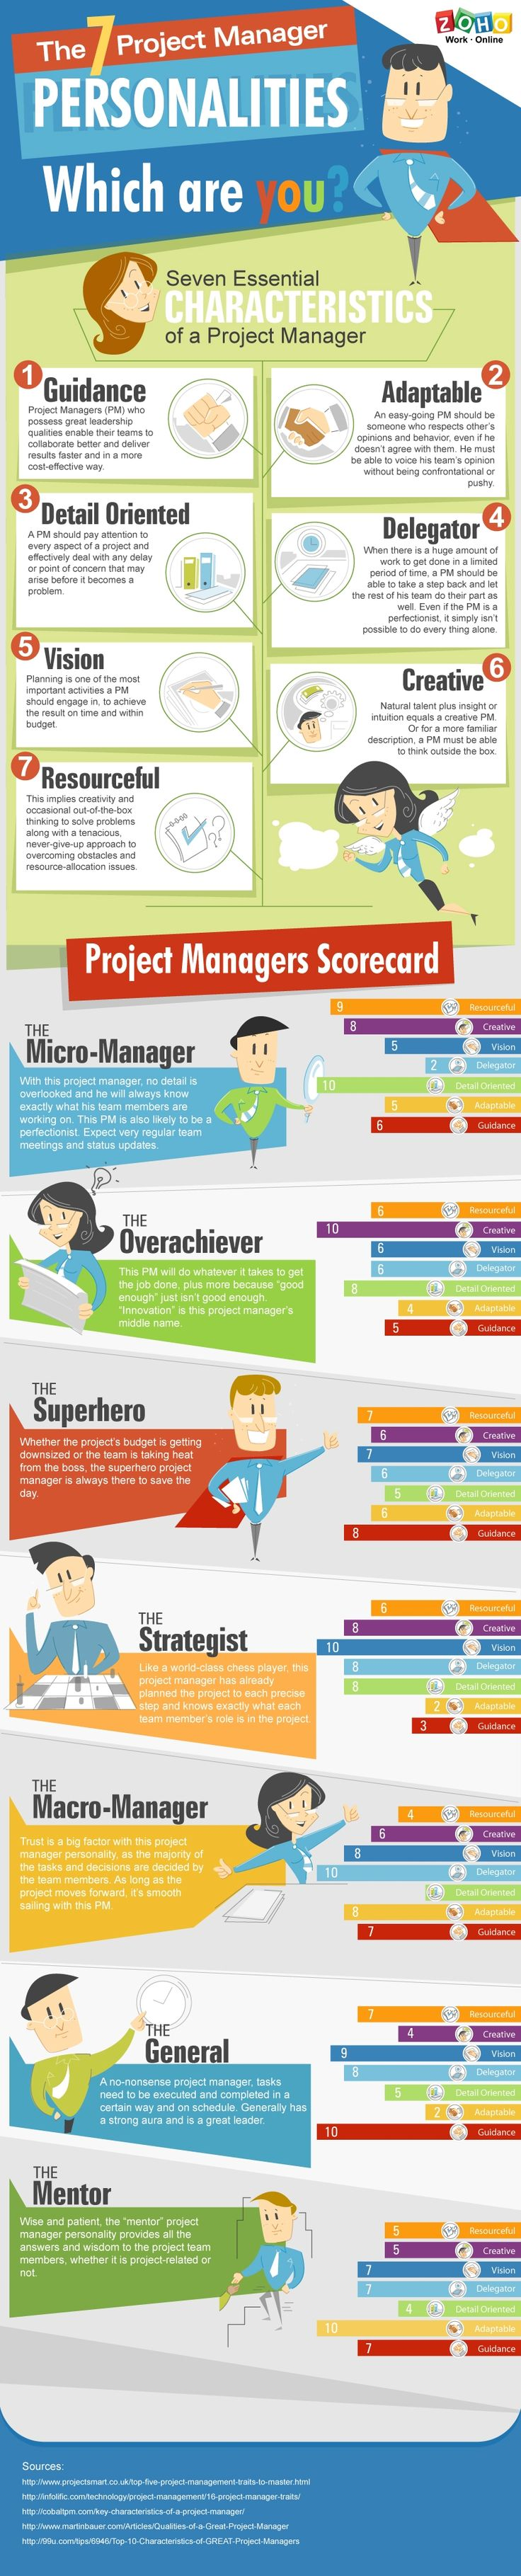 Infographic-Which-Type-Of-Project-Manager-Are-You-Infographic Infographic : Which Type Of Project Manager Are You [Infographic]